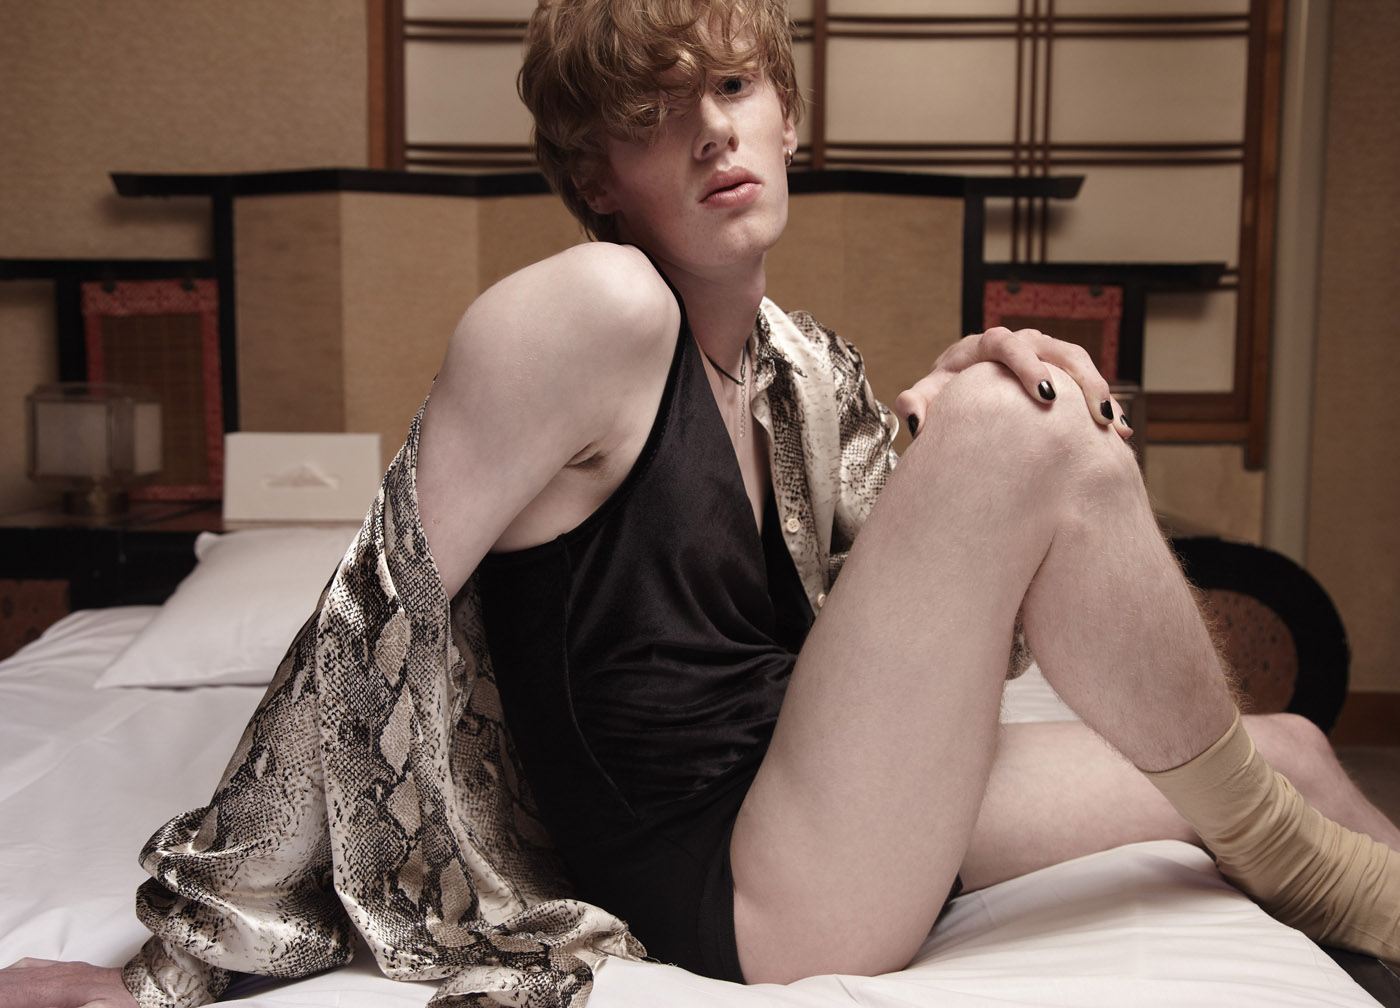 Erik by Kei Takeda for CHASSEUR MAGAZINE (9)